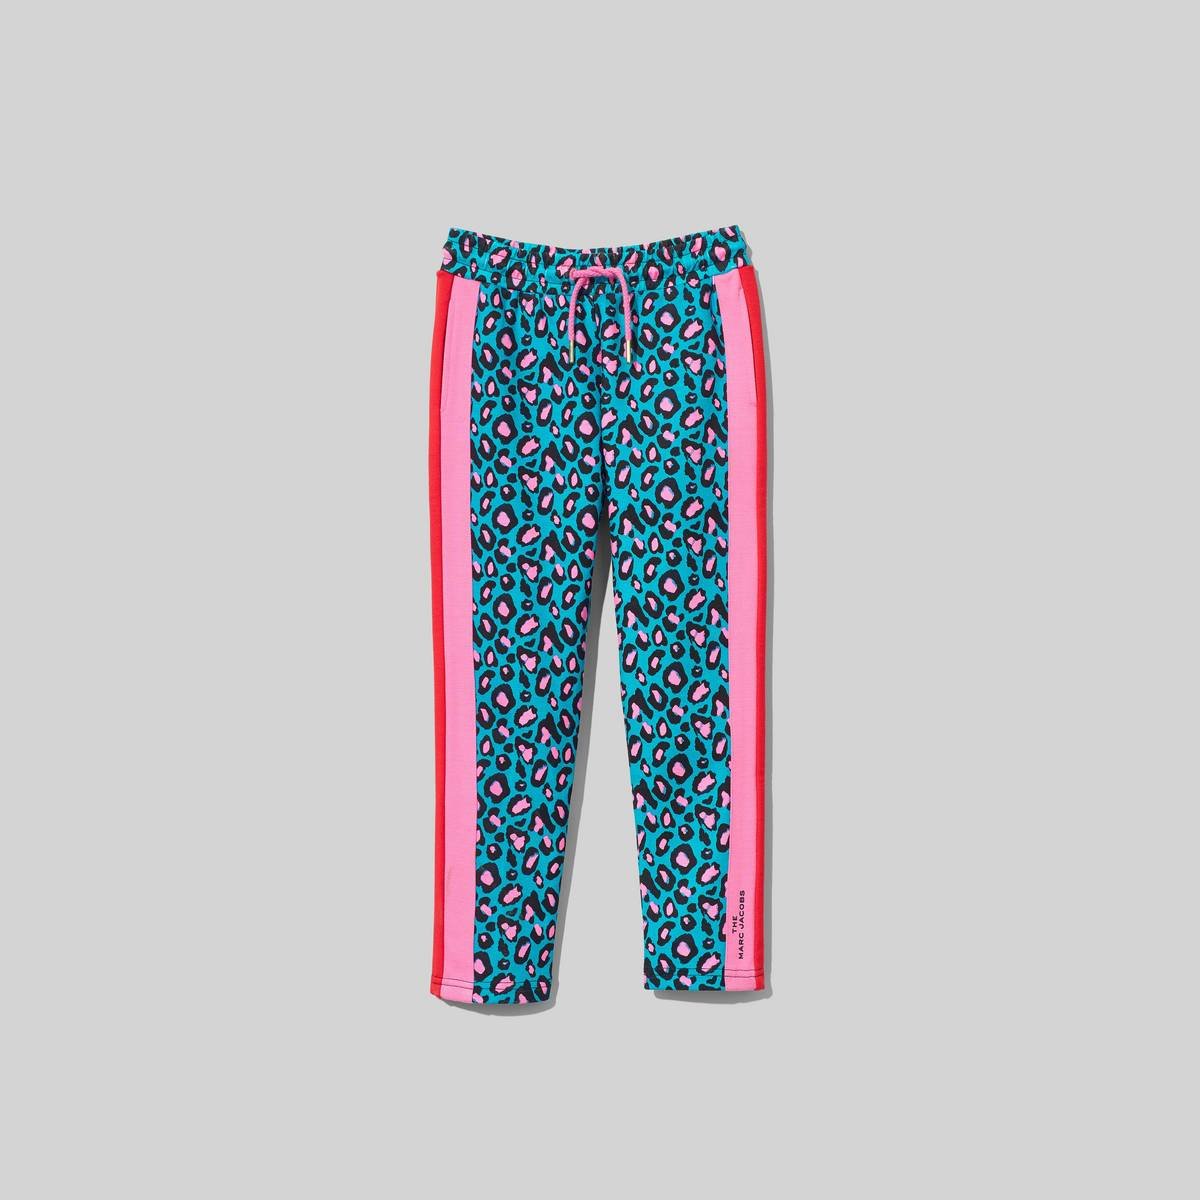 Cheetah print track pants with contrast stripes at sides. Wear with the matching Track Jacket. | MARC JACOBS Women\\'s The Track Pants in Multi, Size 4Y